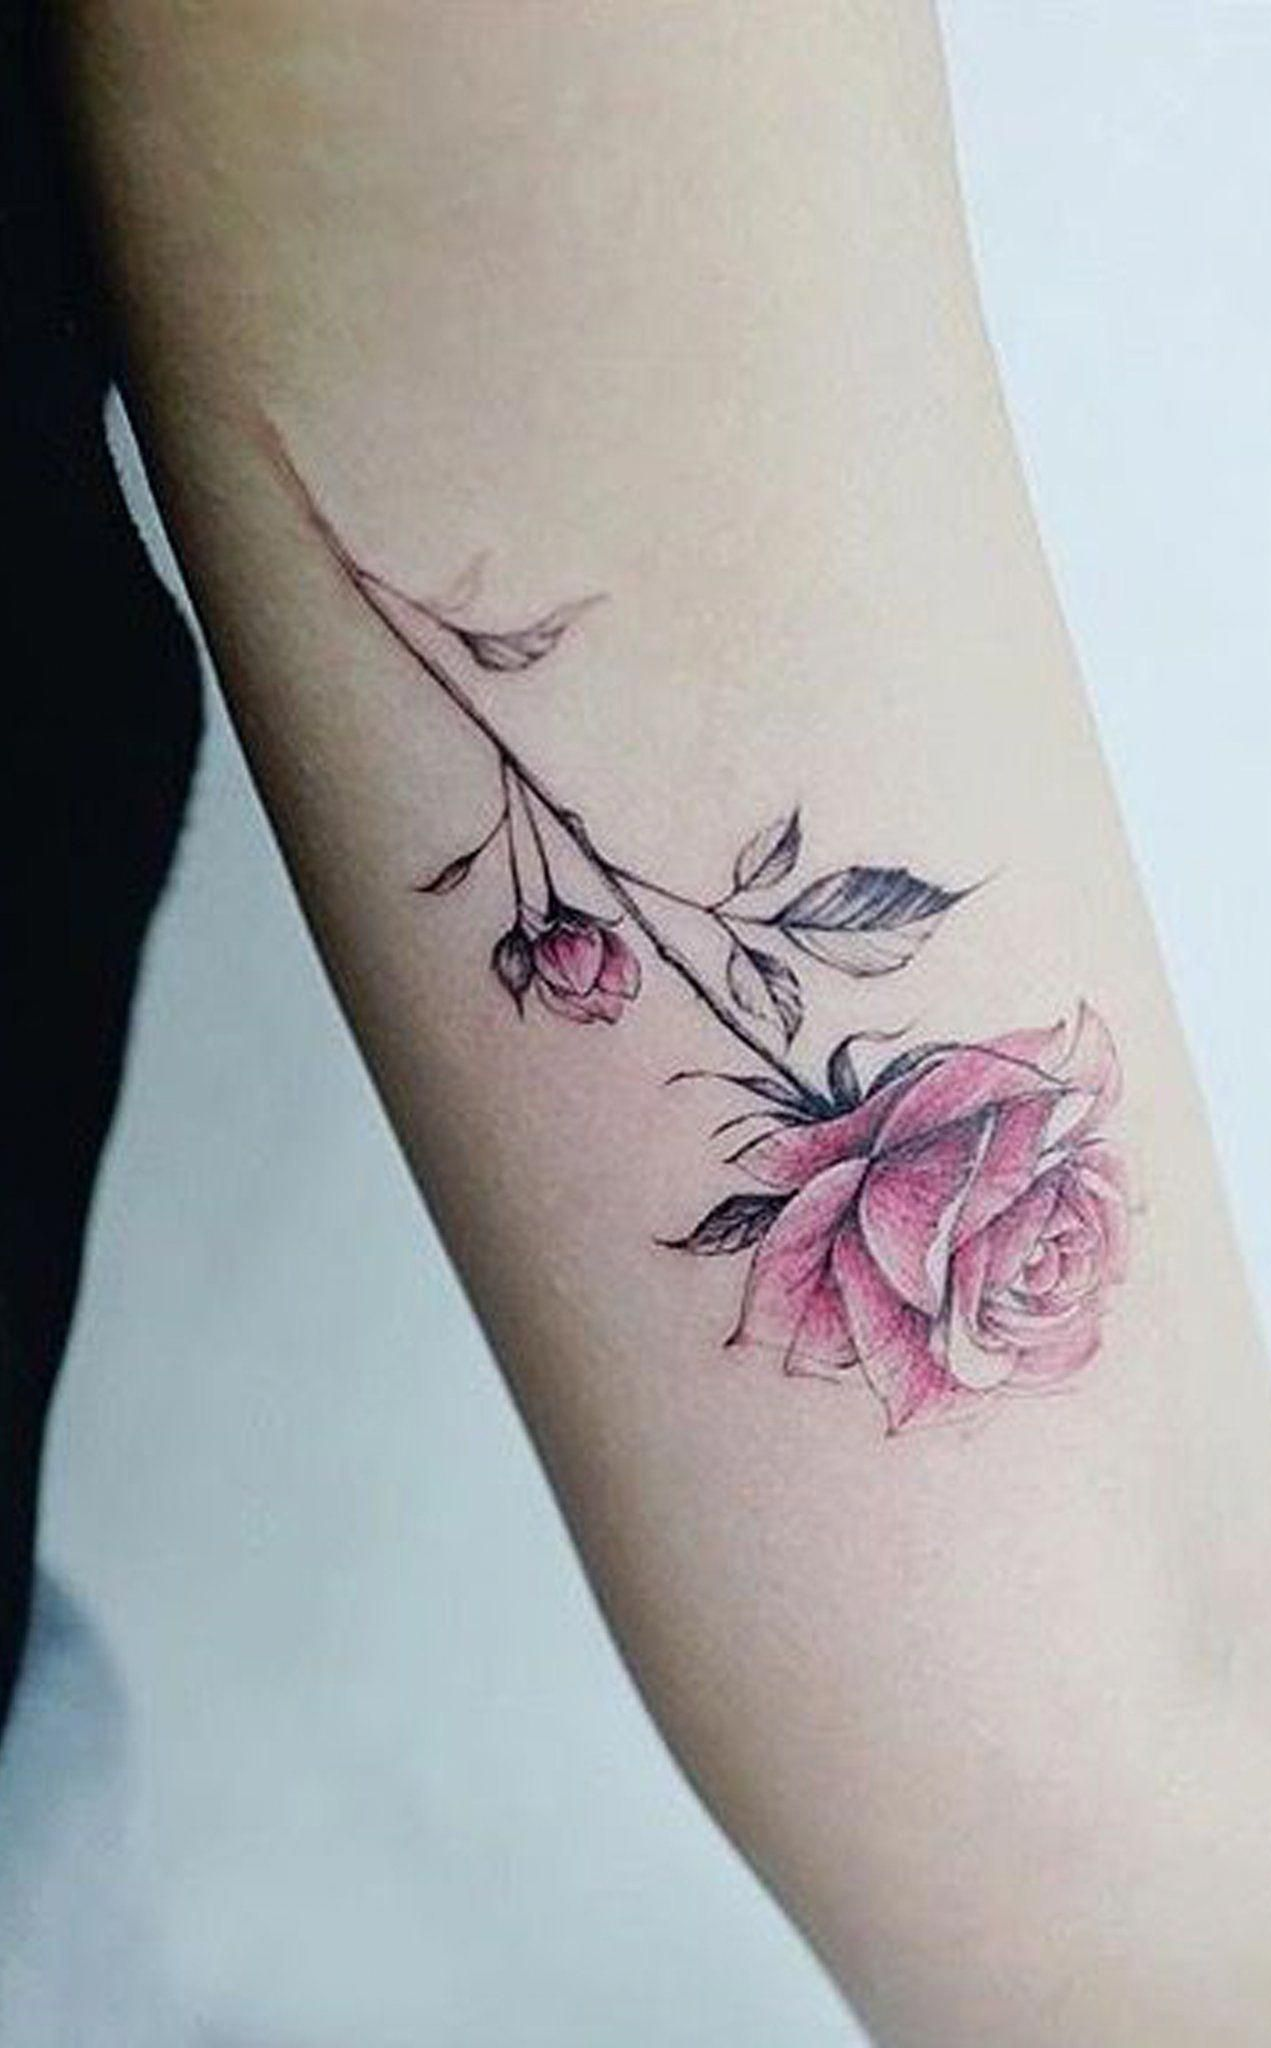 Watercolor Rose Arm Tattoo Ideas For Women Small Colorful Flower Bicep Tat Www Mybodiart Com Rose Tattoo On Arm Flower Tattoo Arm Tattoos For Women Small